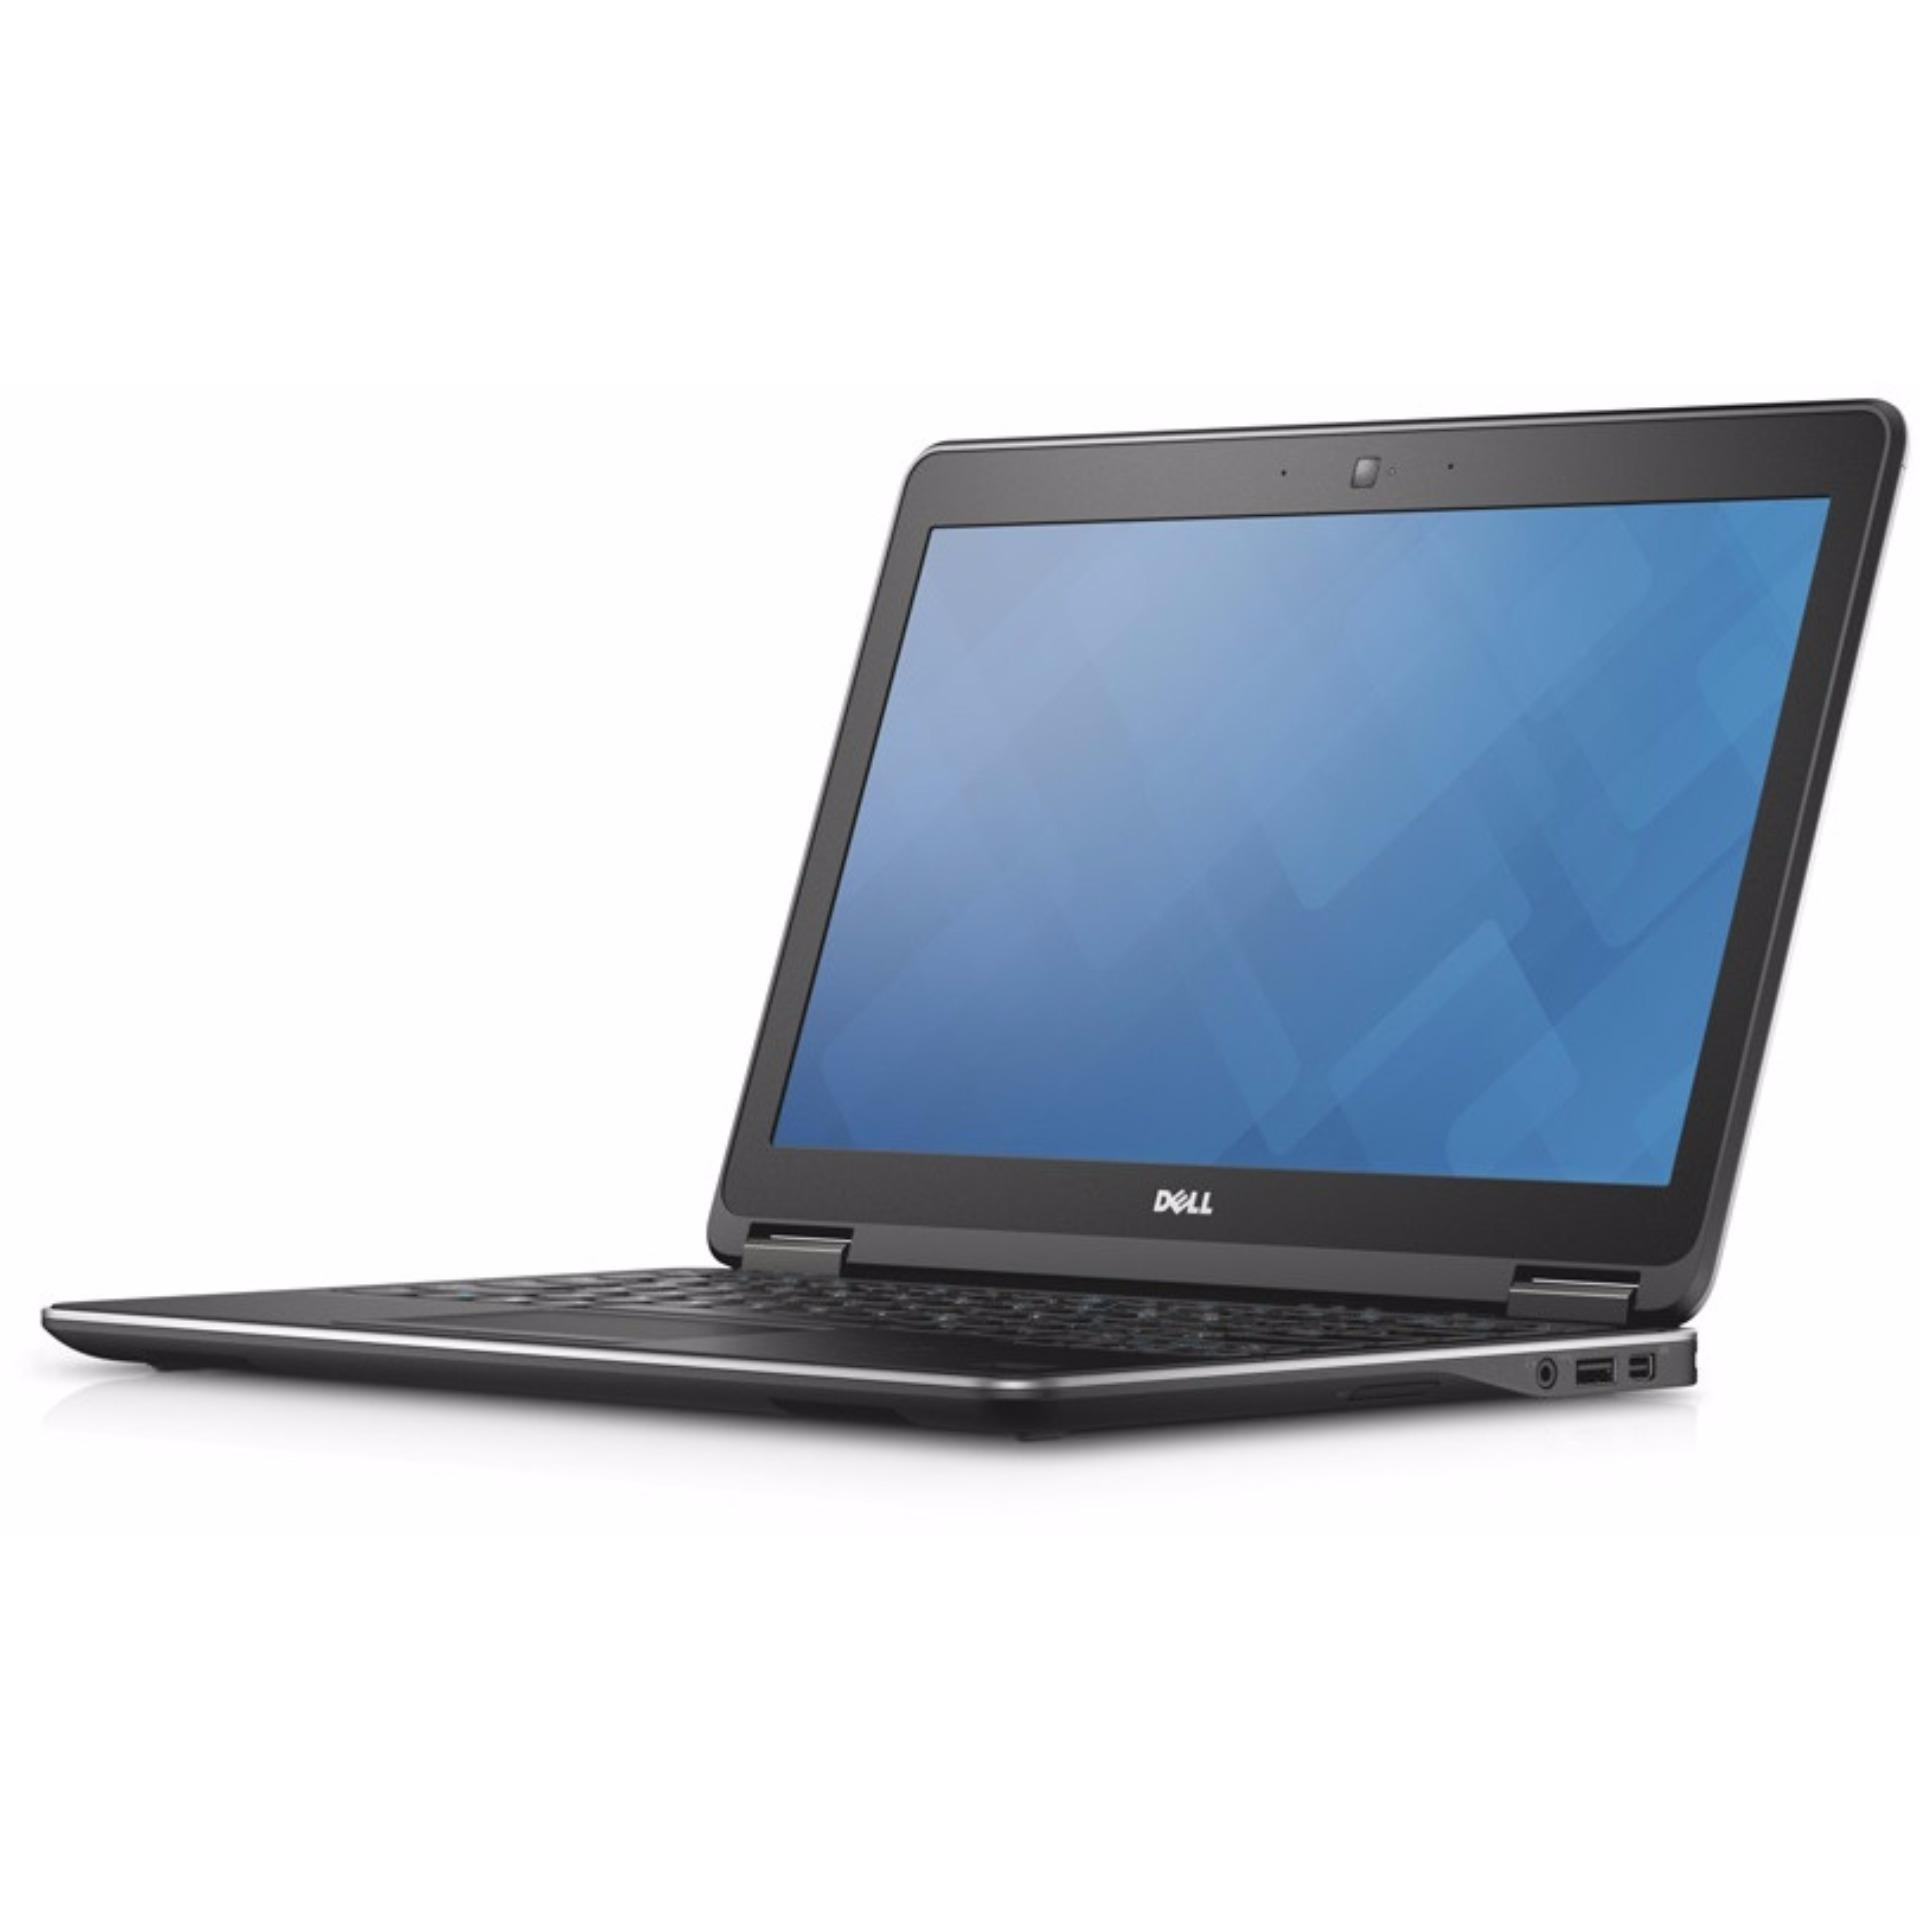 (Refurbished) Dell E7240 (Intel Core i5-4310U/256GB SSD/4GB RAM)